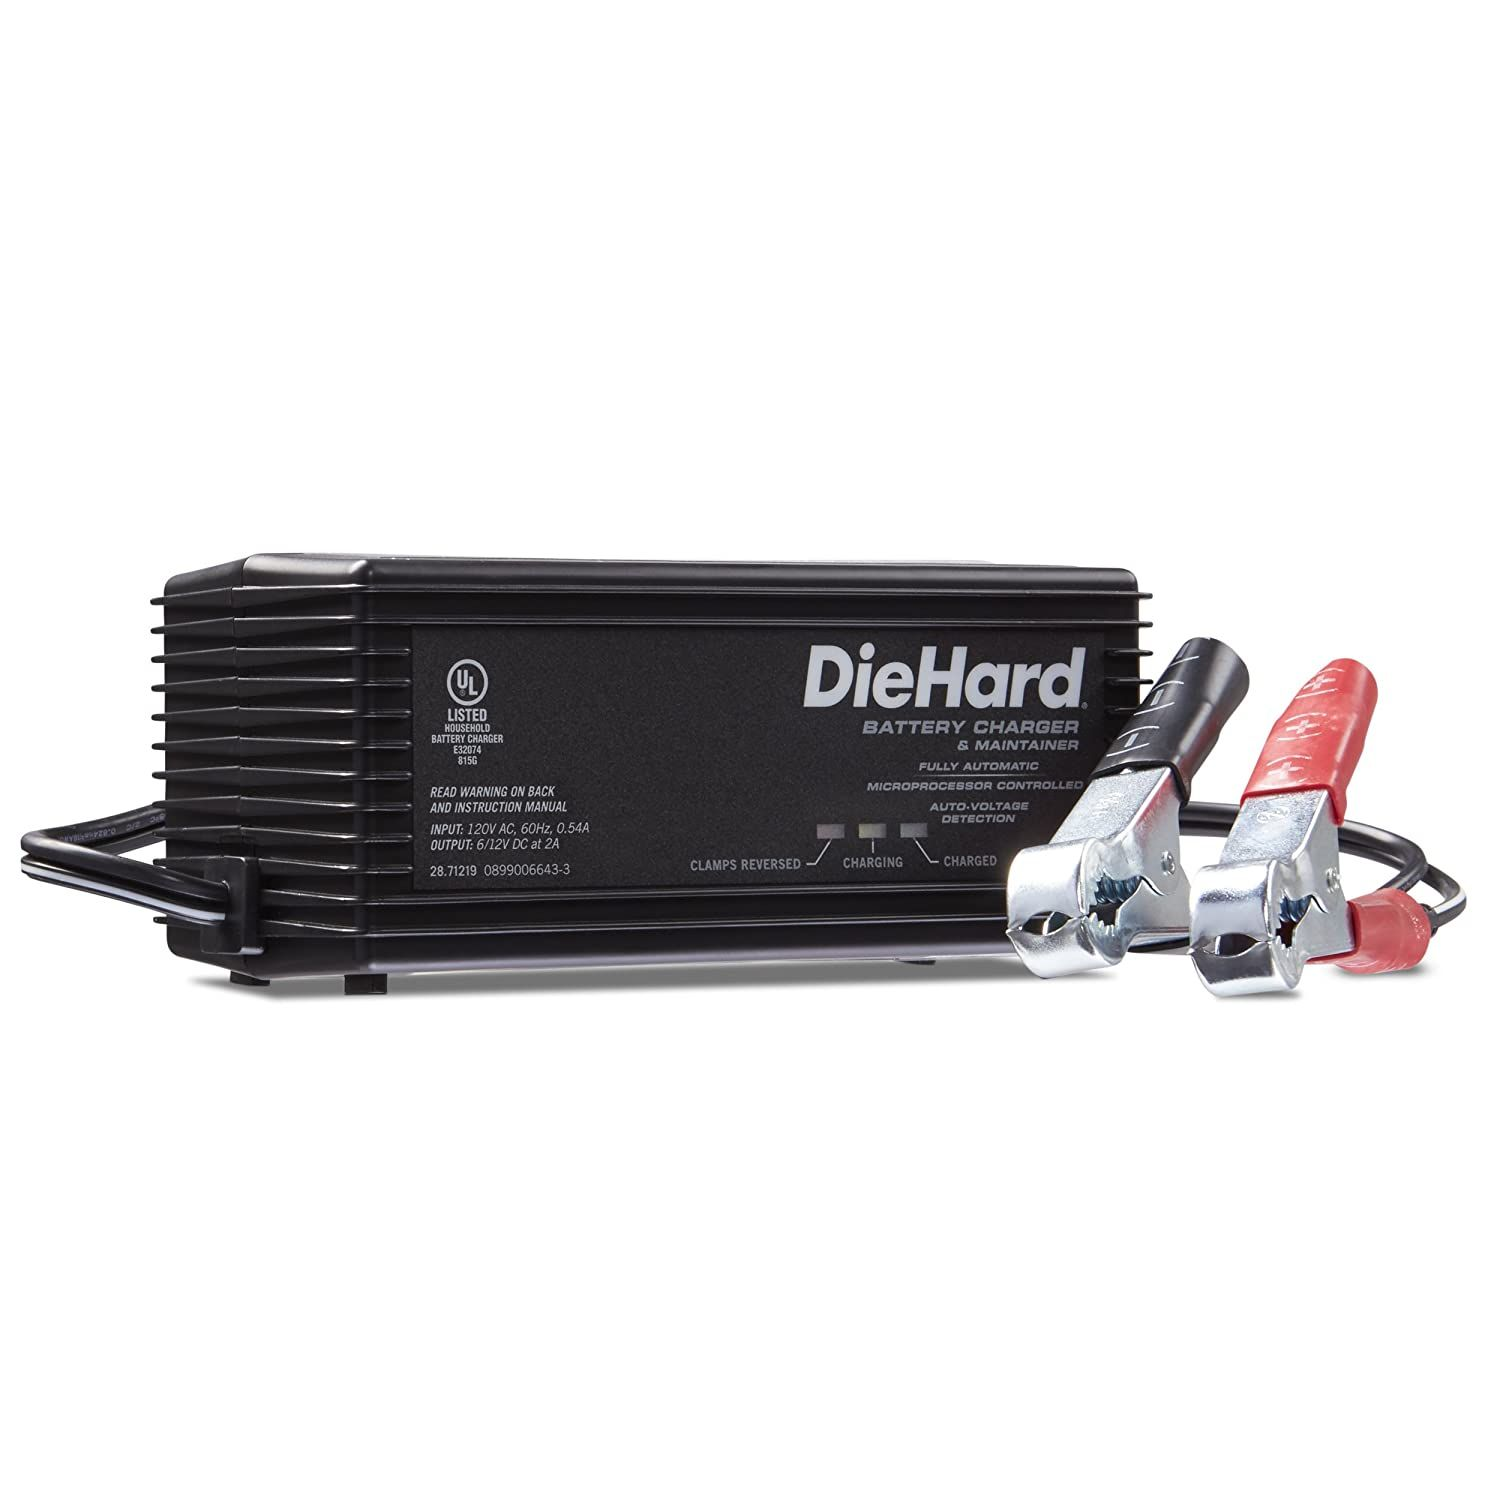 Diehard 71219 6 12v Shelf Smart Battery Charger And 2a Maintainer Click Image For More Details This I Car Battery Charger Car Battery Best Battery Charger